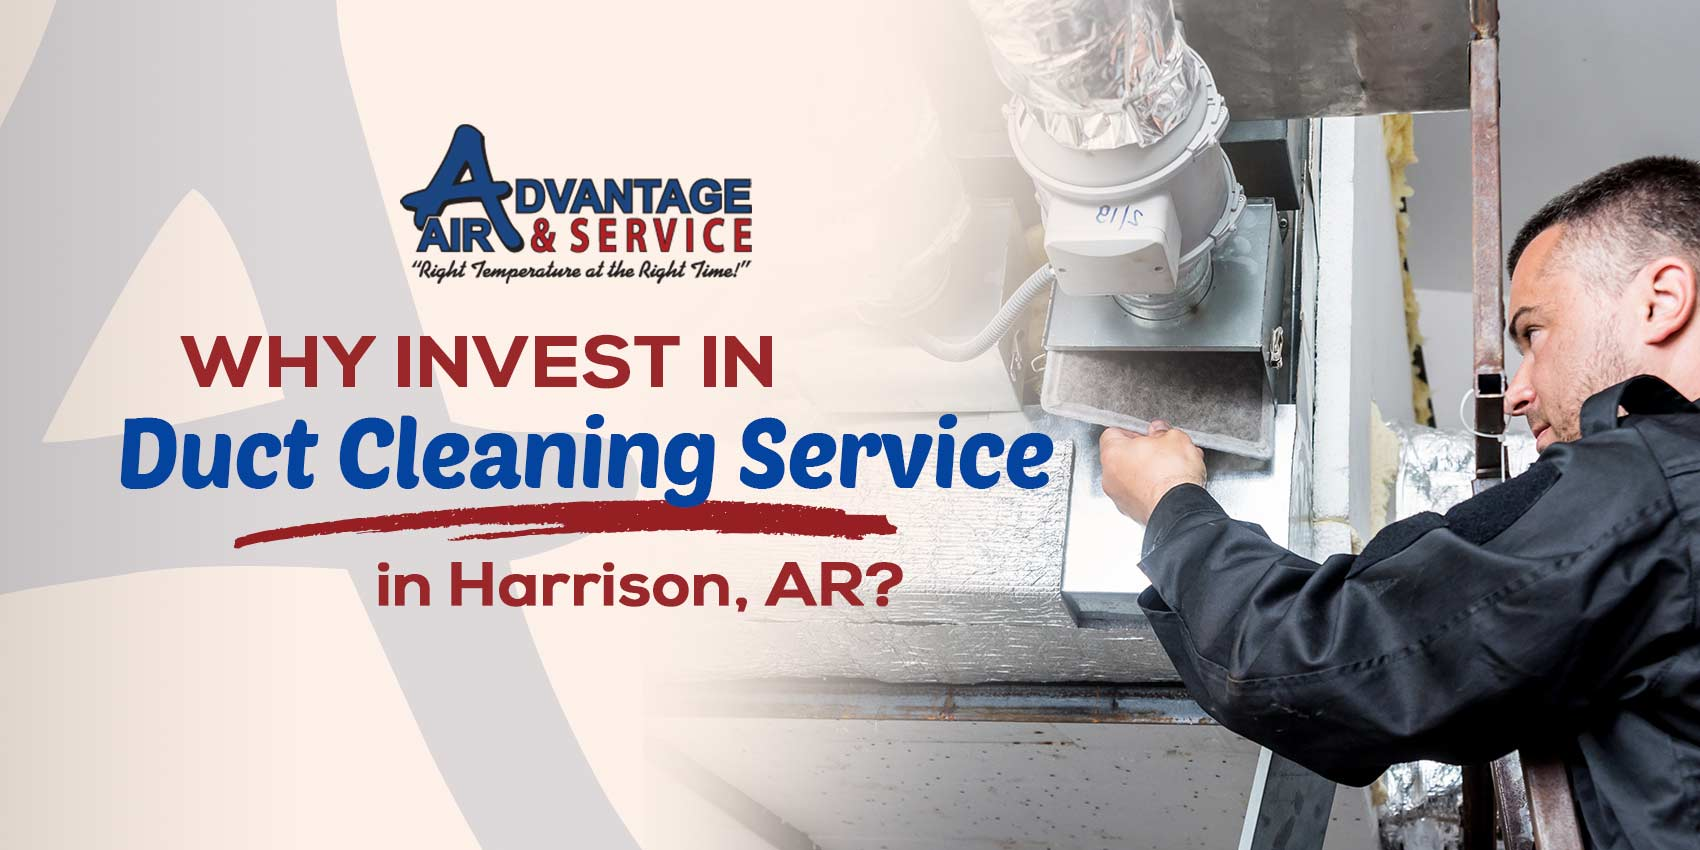 Why Invest in Duct Cleaning Service in Harrison, AR?